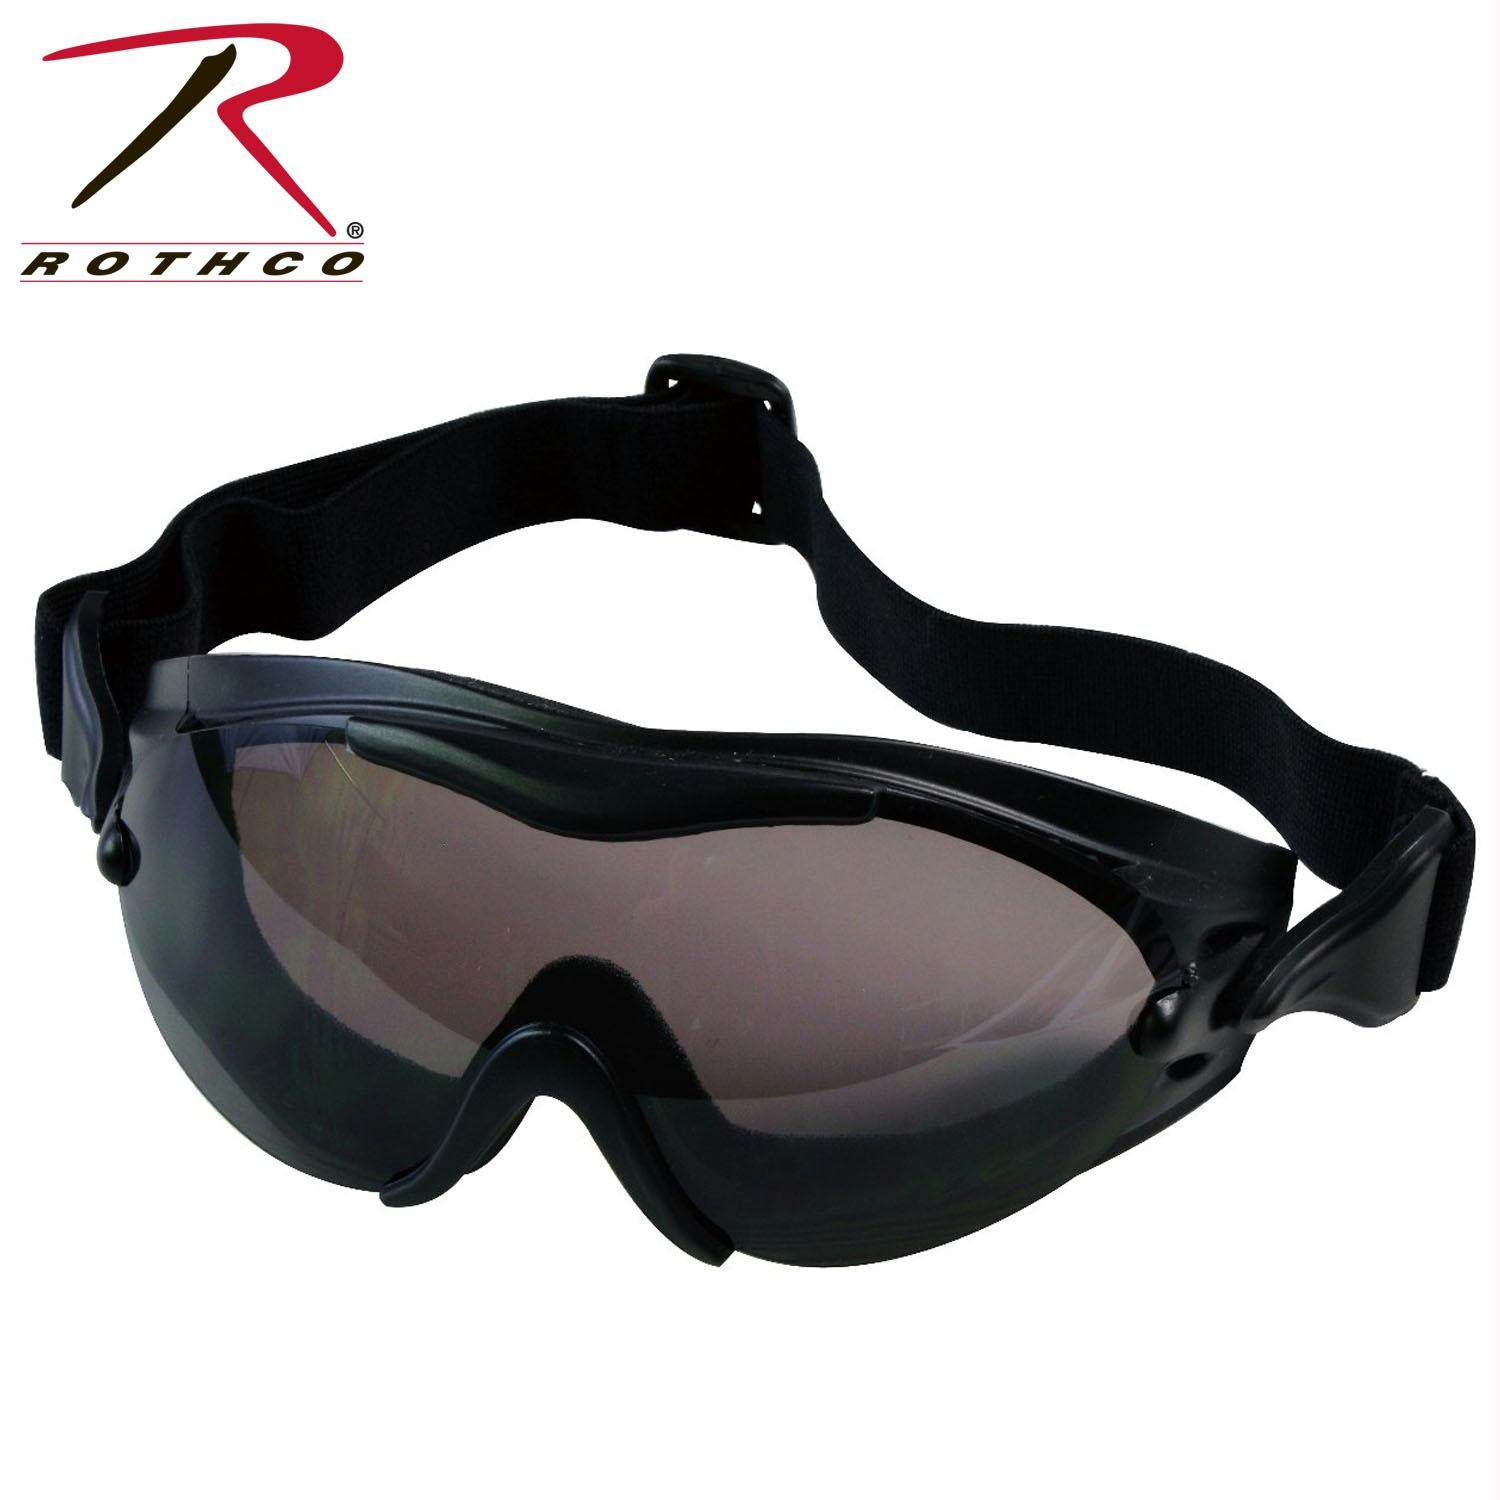 Rothco SWAT Tec Single Lens Tactical Goggle - Black